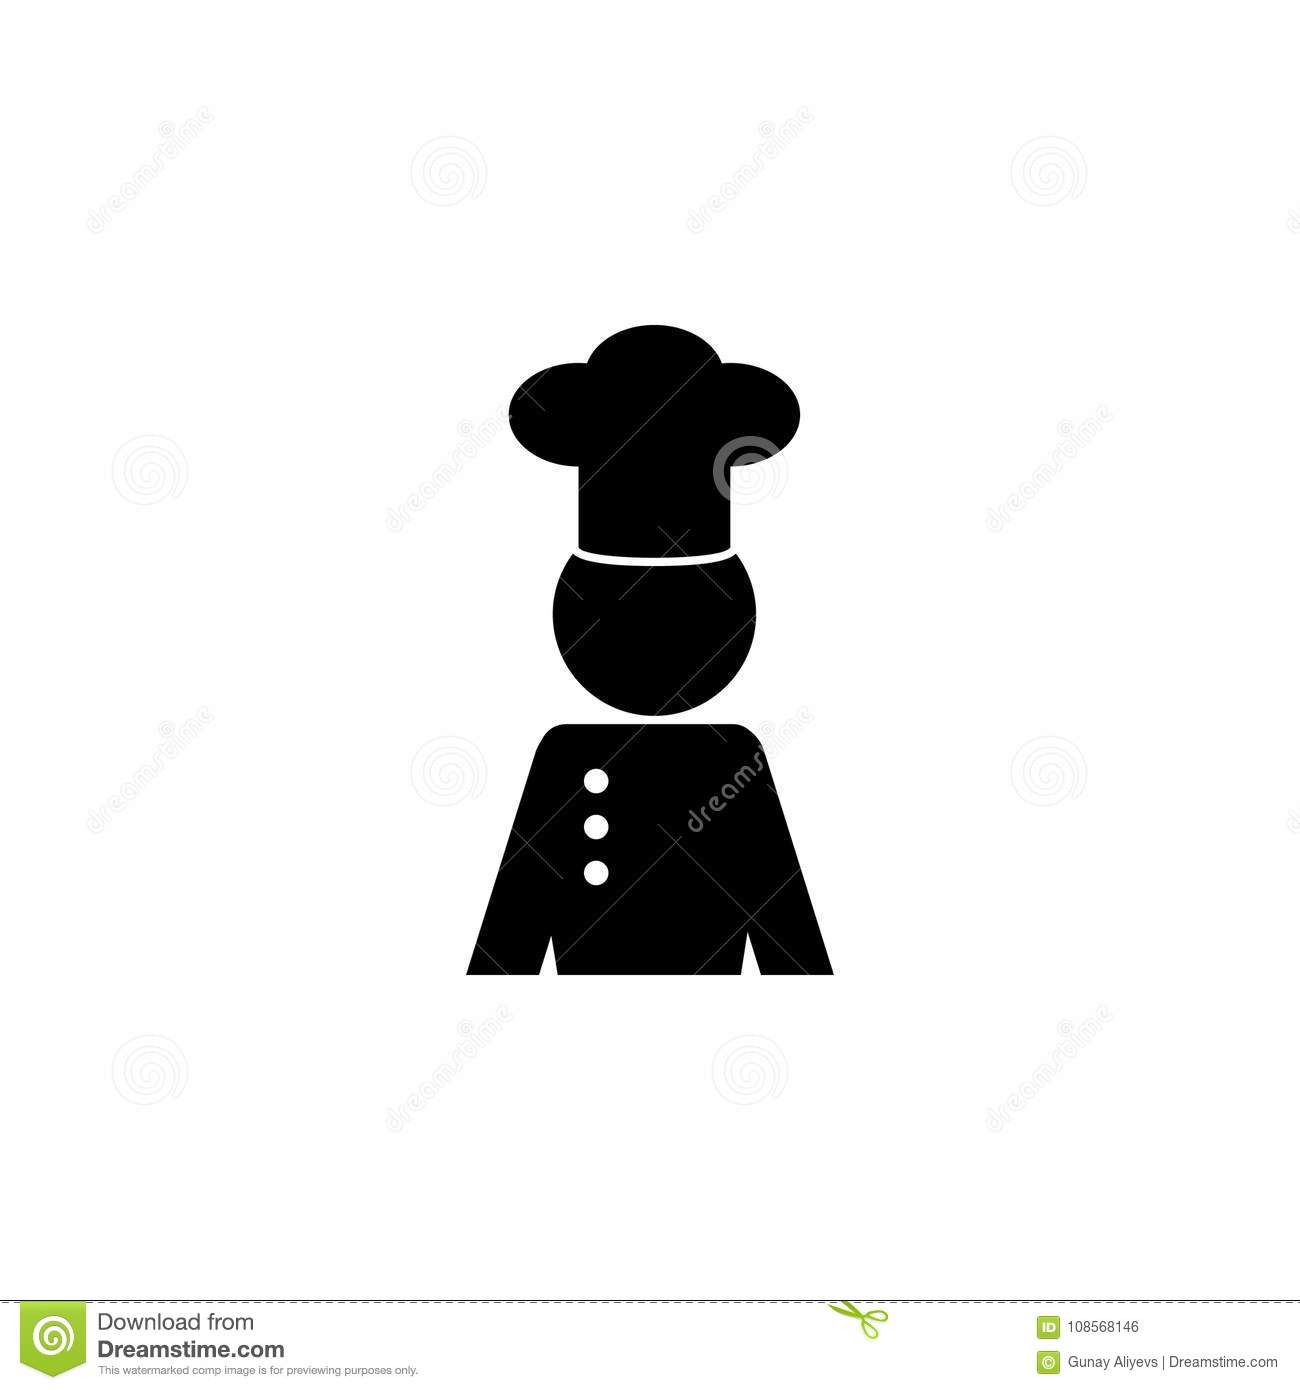 Professional chef avatar character icon chef kitchen element chef kitchen element icon premium quality graphic design signs outline symbols collection icon for websites web design mobile app info graphics on buycottarizona Choice Image